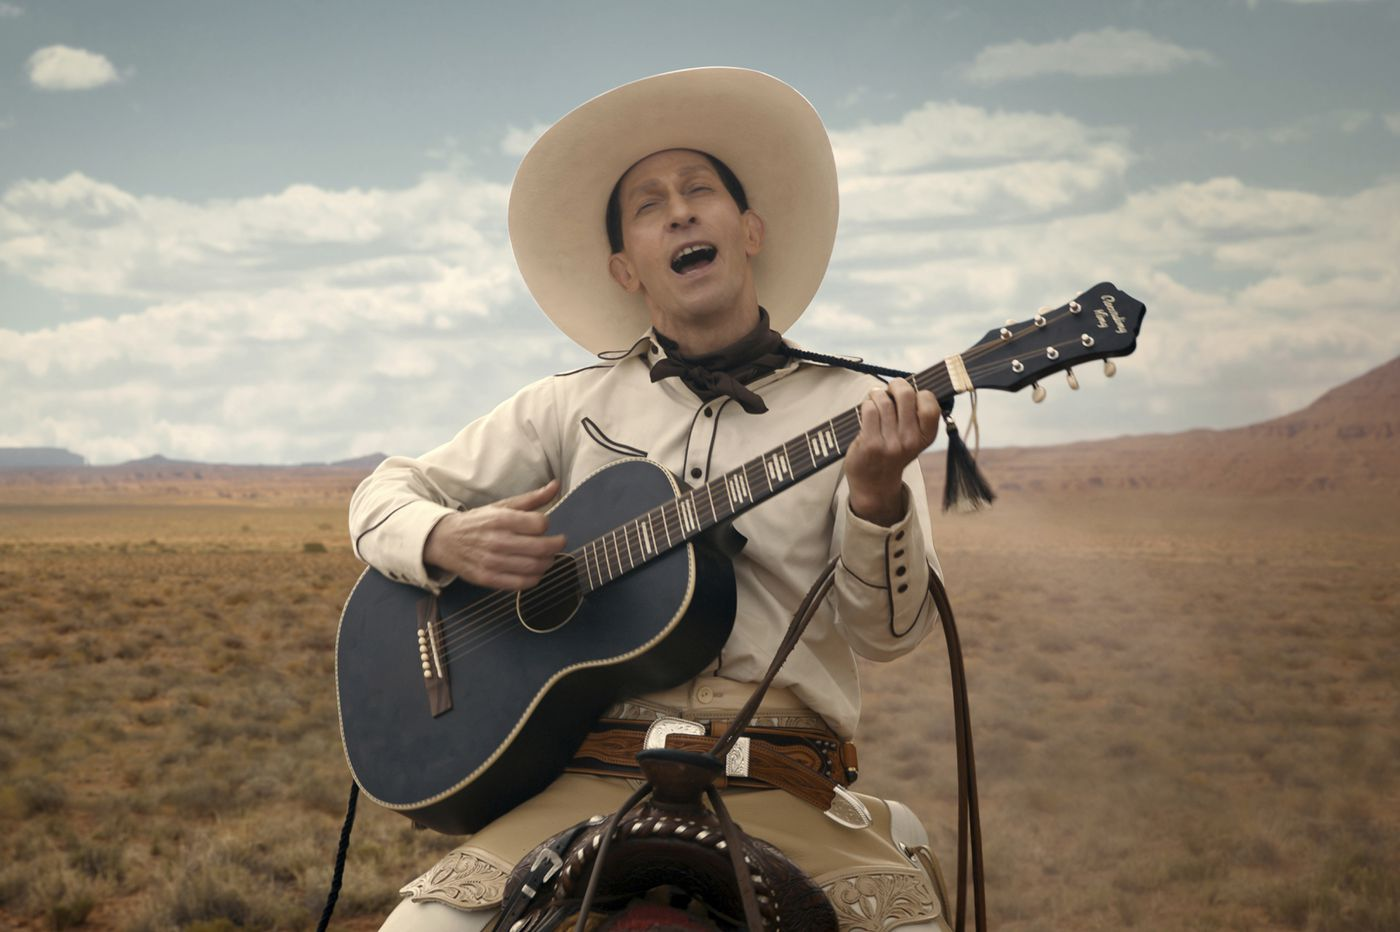 The Western saga 'The Ballad of Buster Scruggs' find the Coen brothers back in the saddle